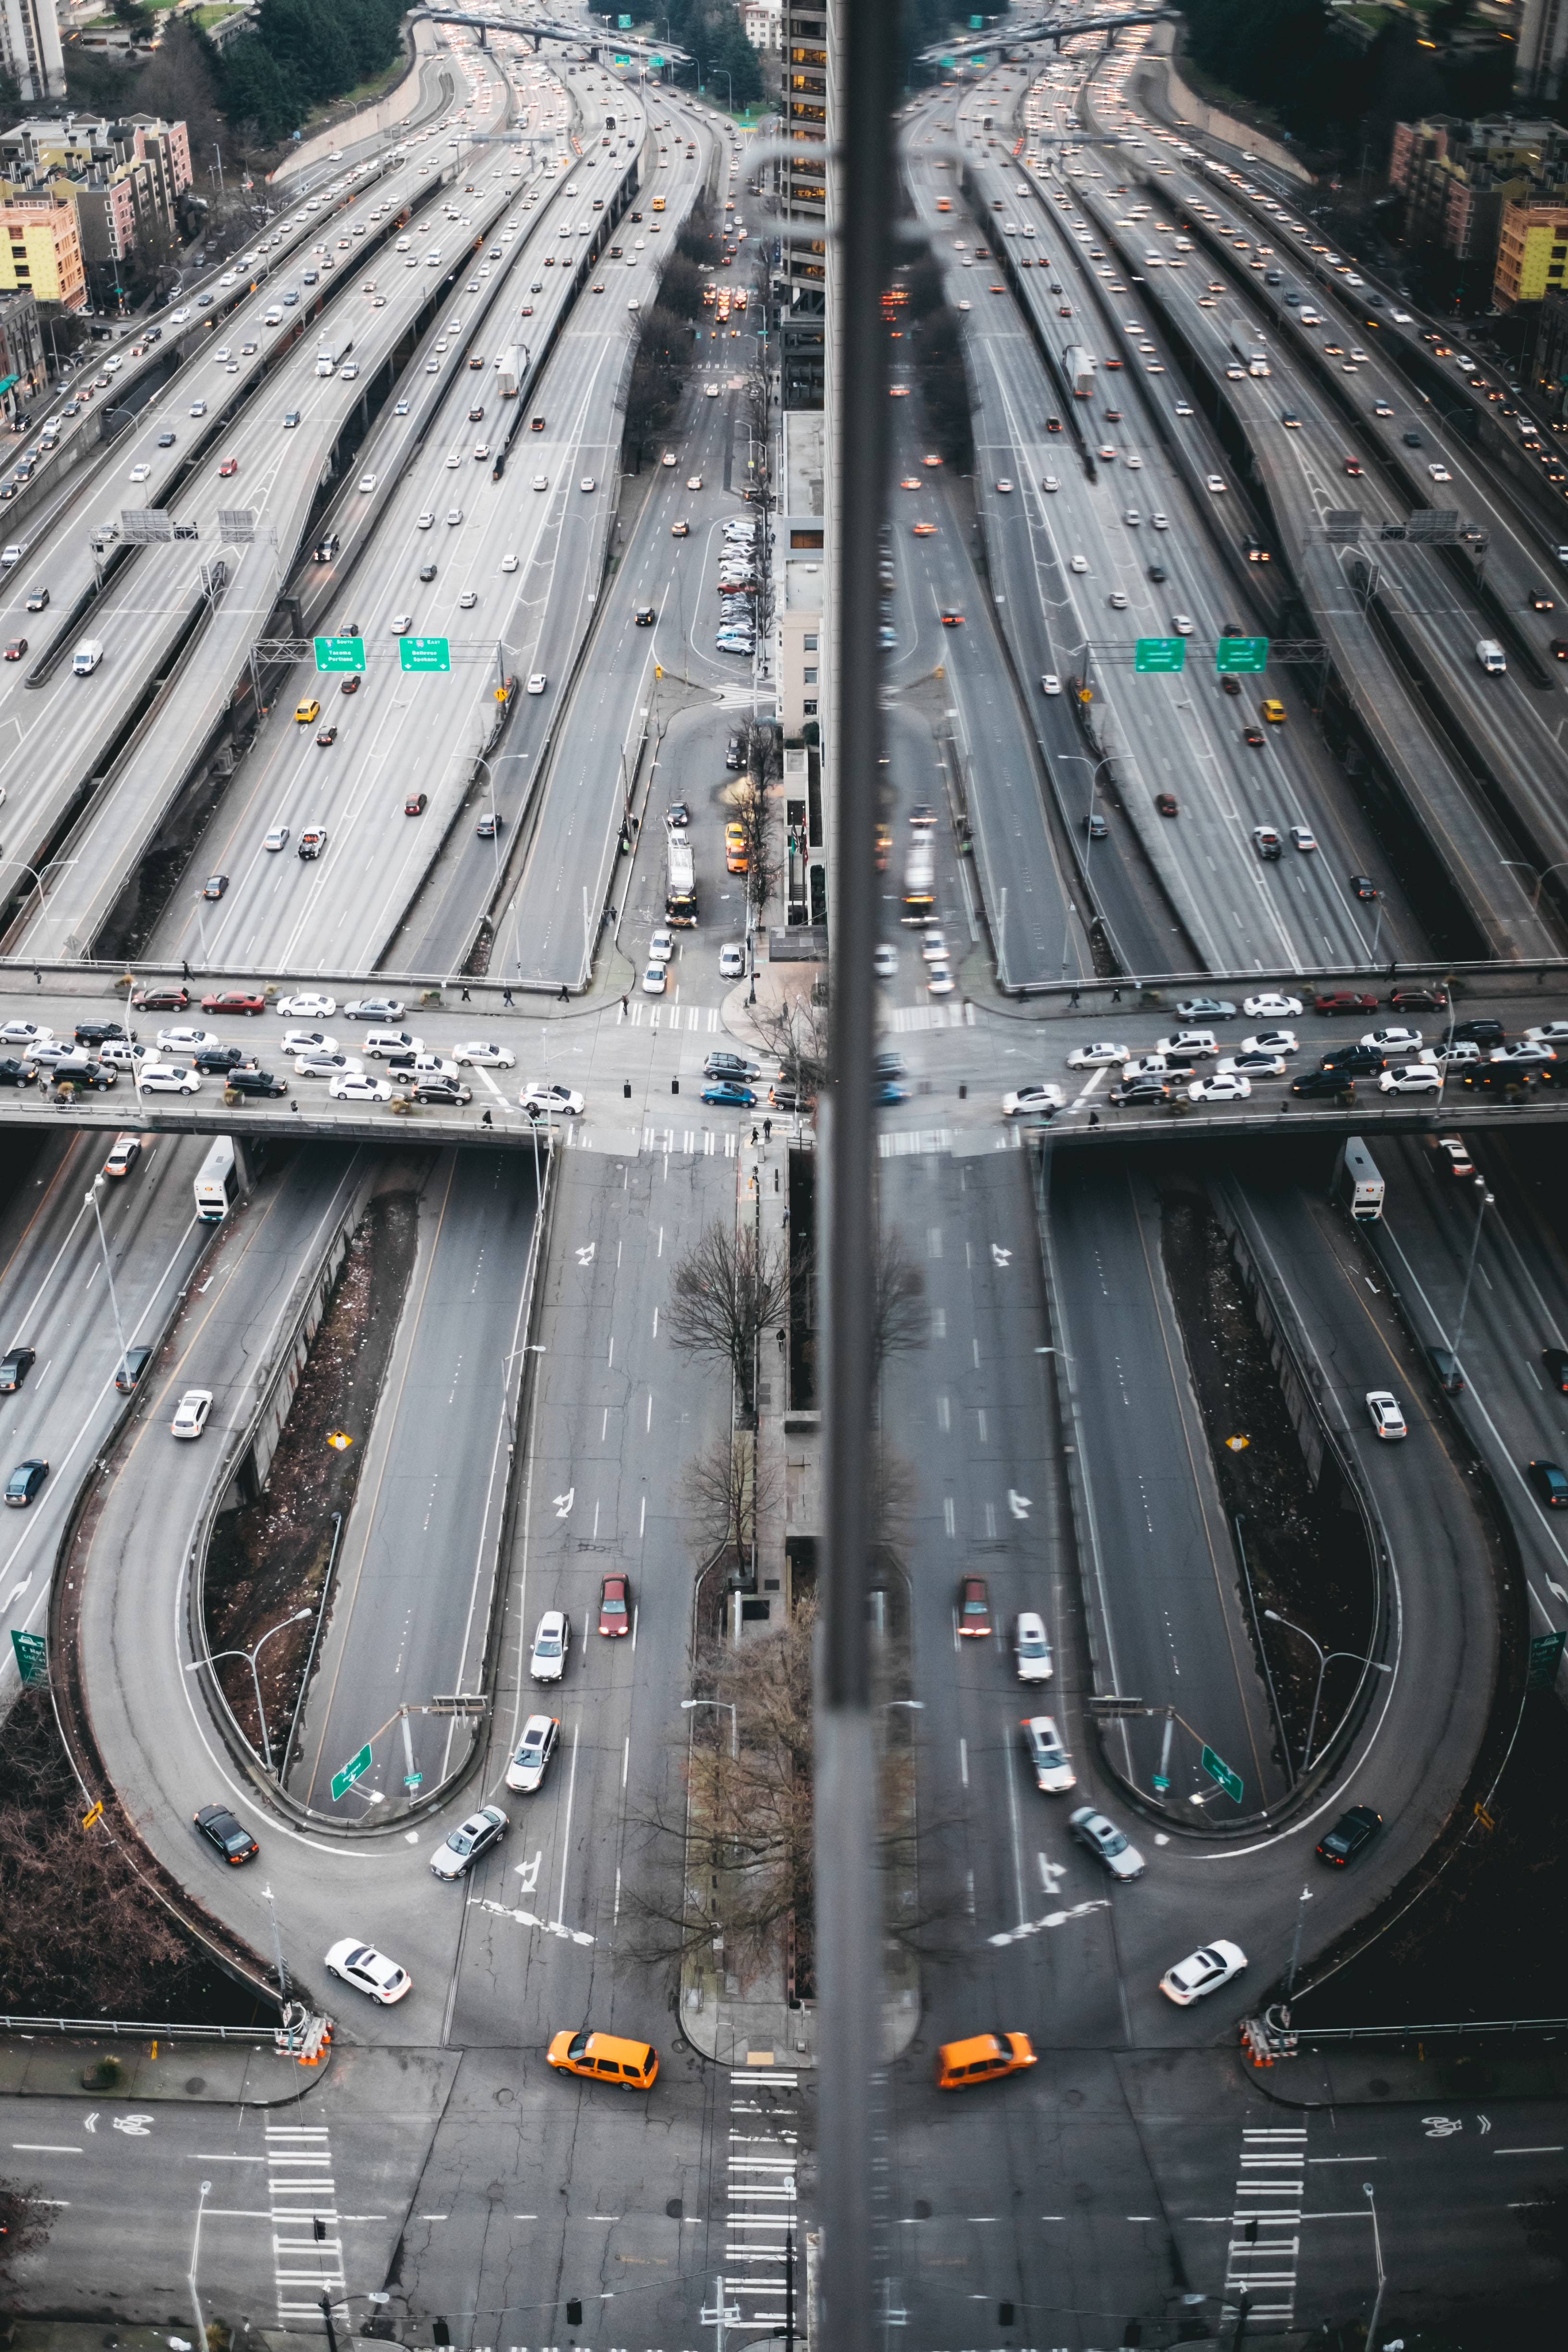 aerial photo of road